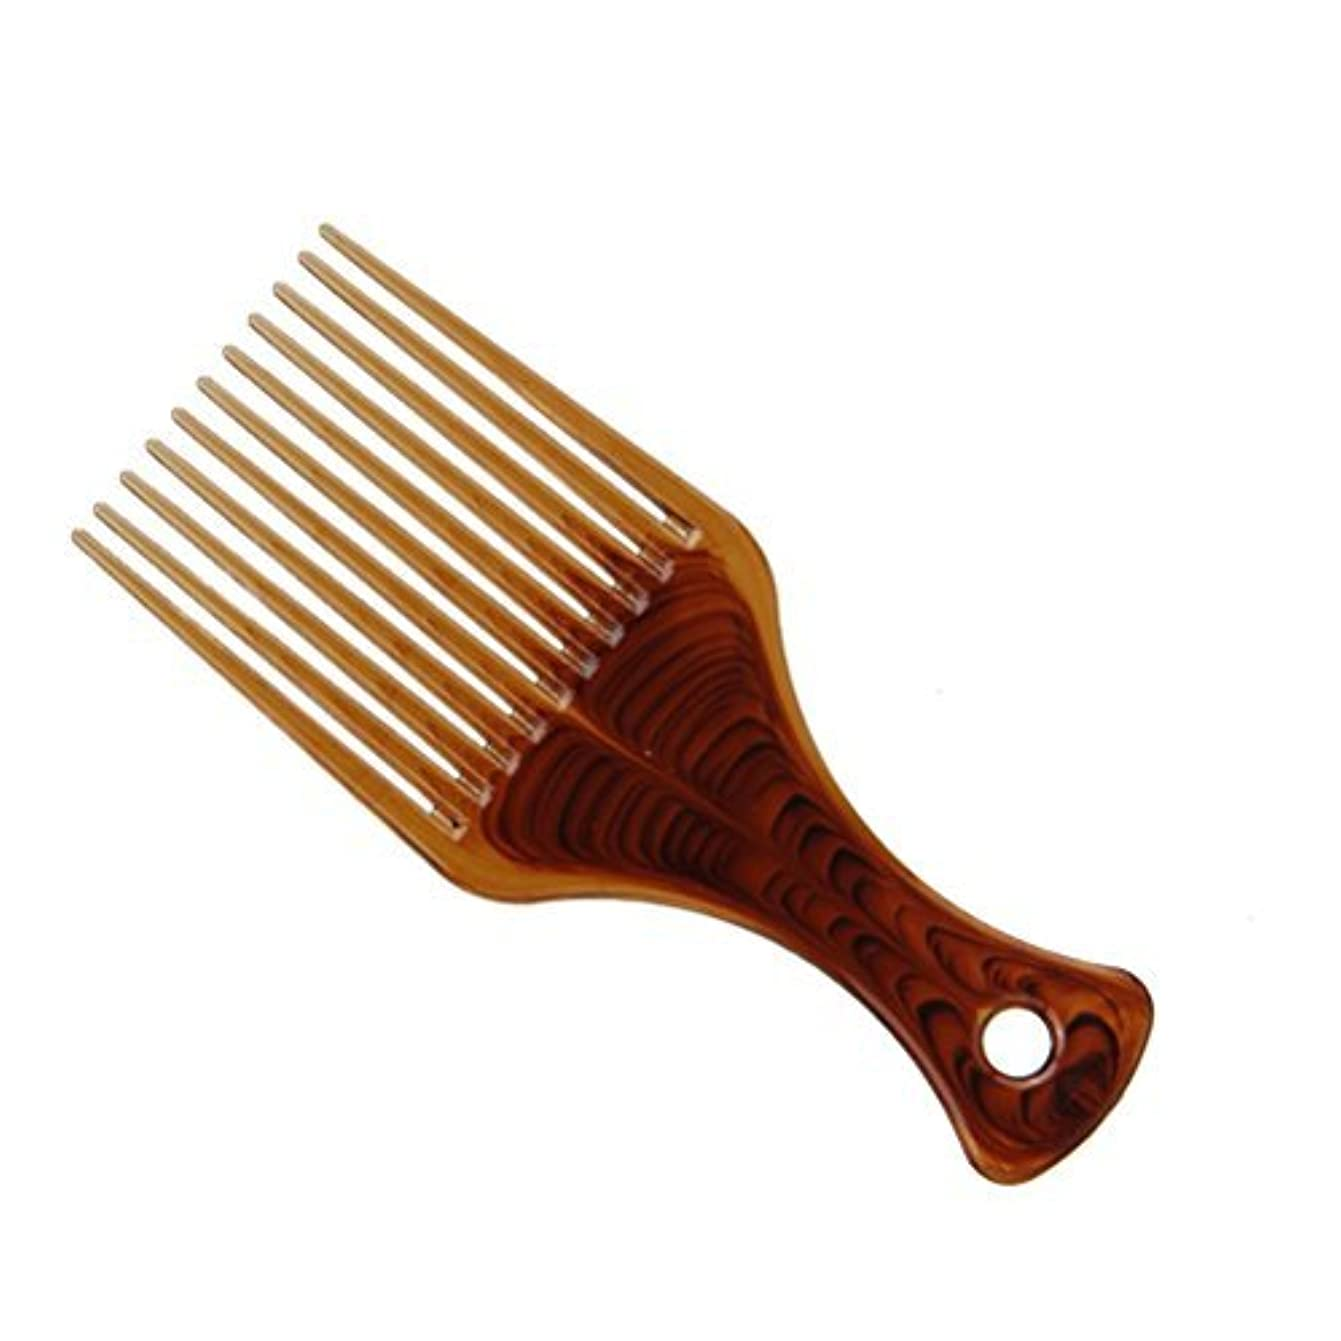 かすかな乙女コミュニティFrcolor Hair Pick Comb, Smooth No Frizz Afro Hair Lift Pick Comb for Hairstyle [並行輸入品]